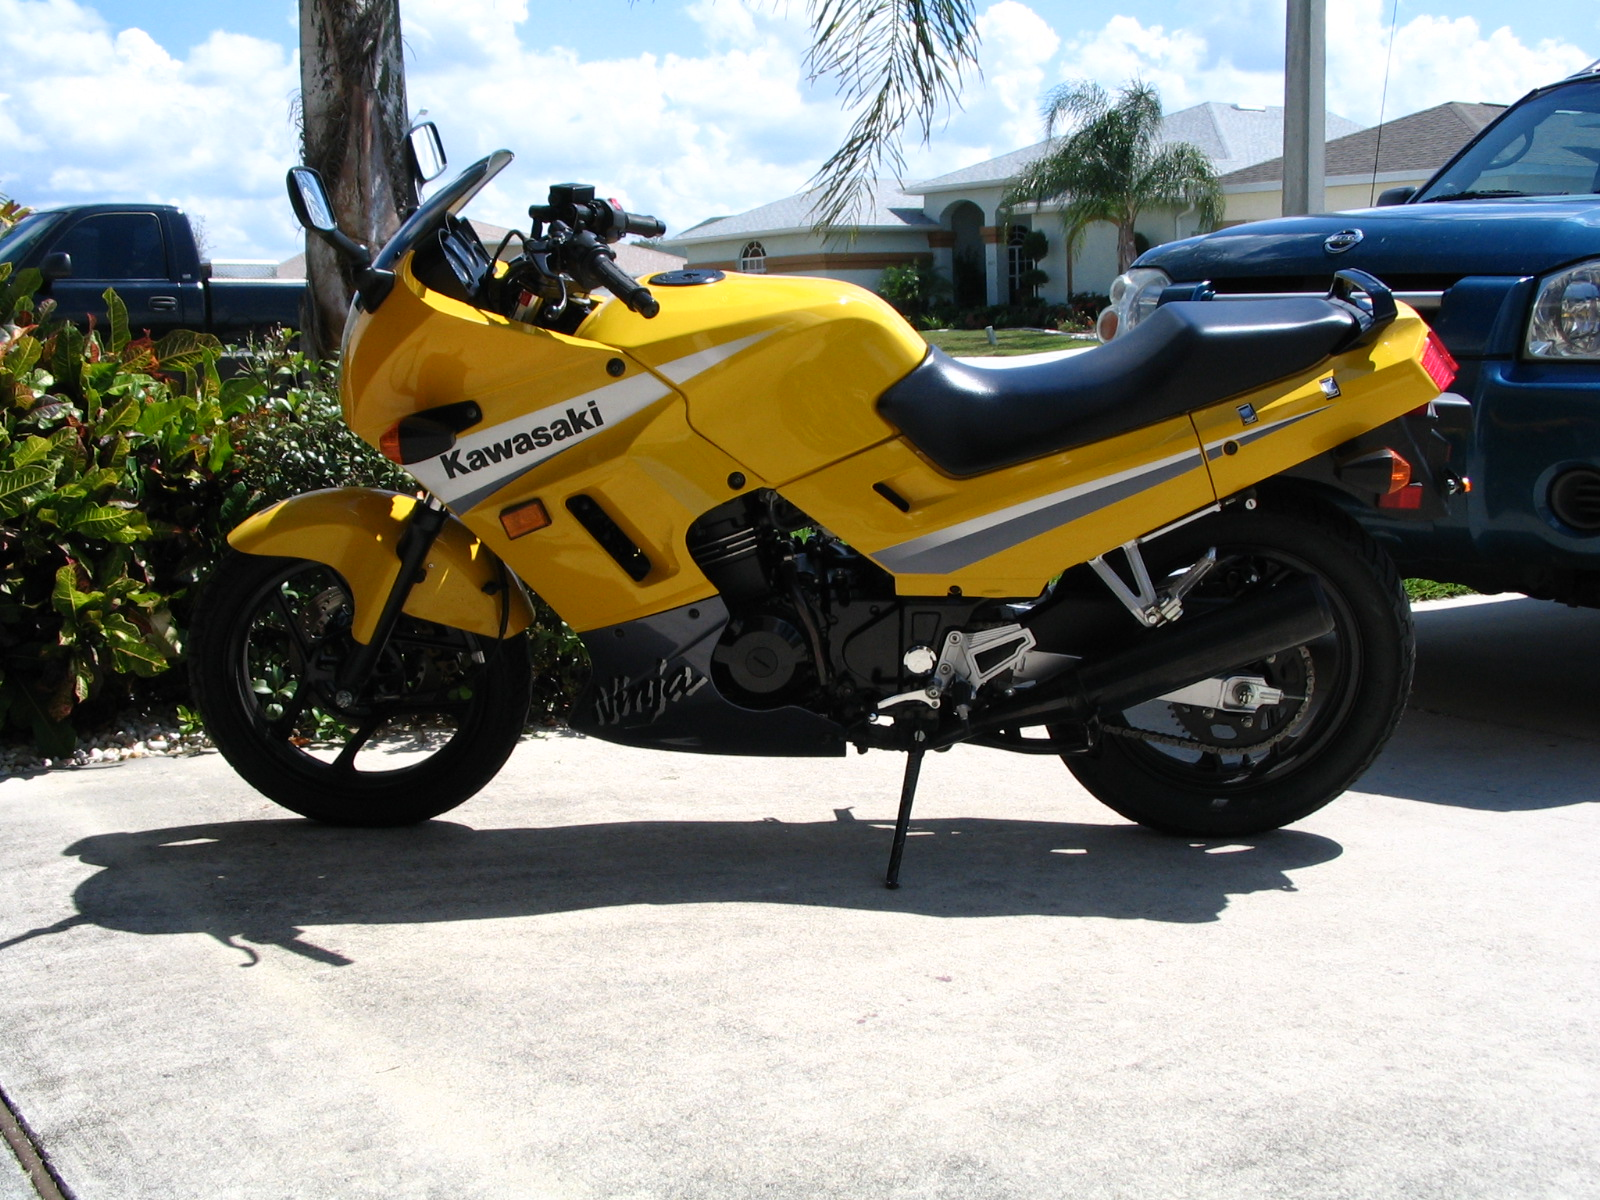 250 Ninja for sale Tampa FL - Sportbikes.net